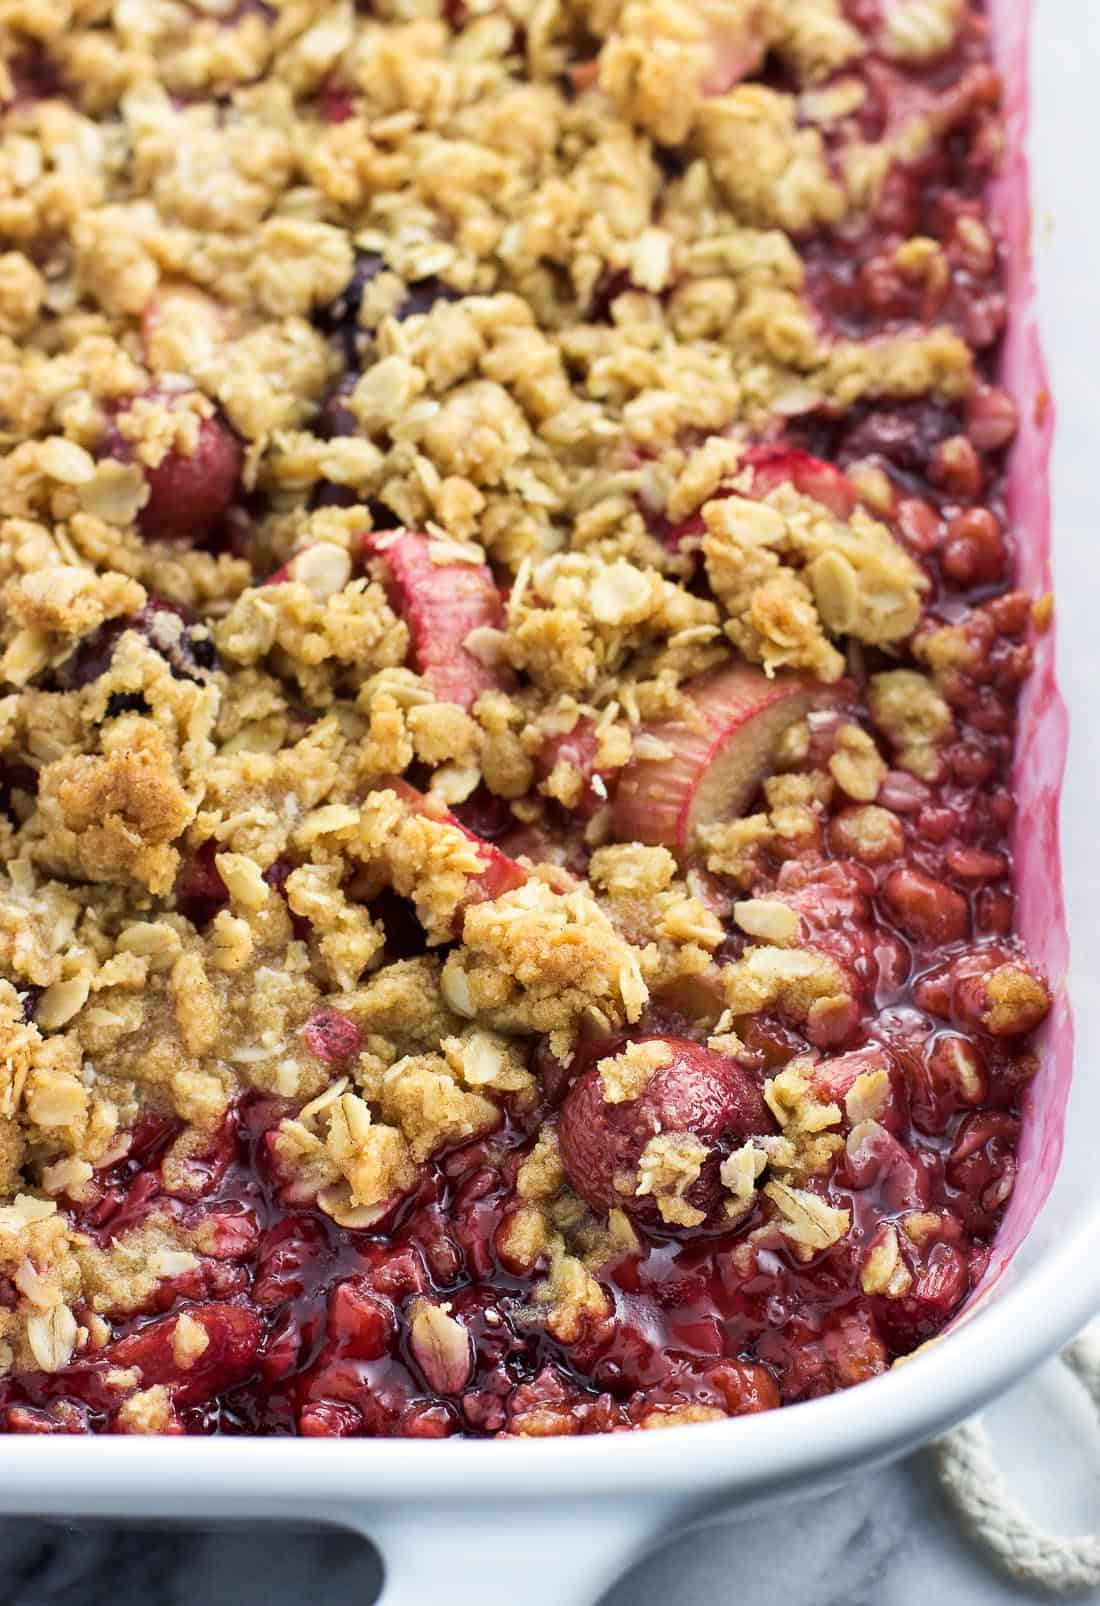 Baked cherry rhubarb crisp in a baking dish